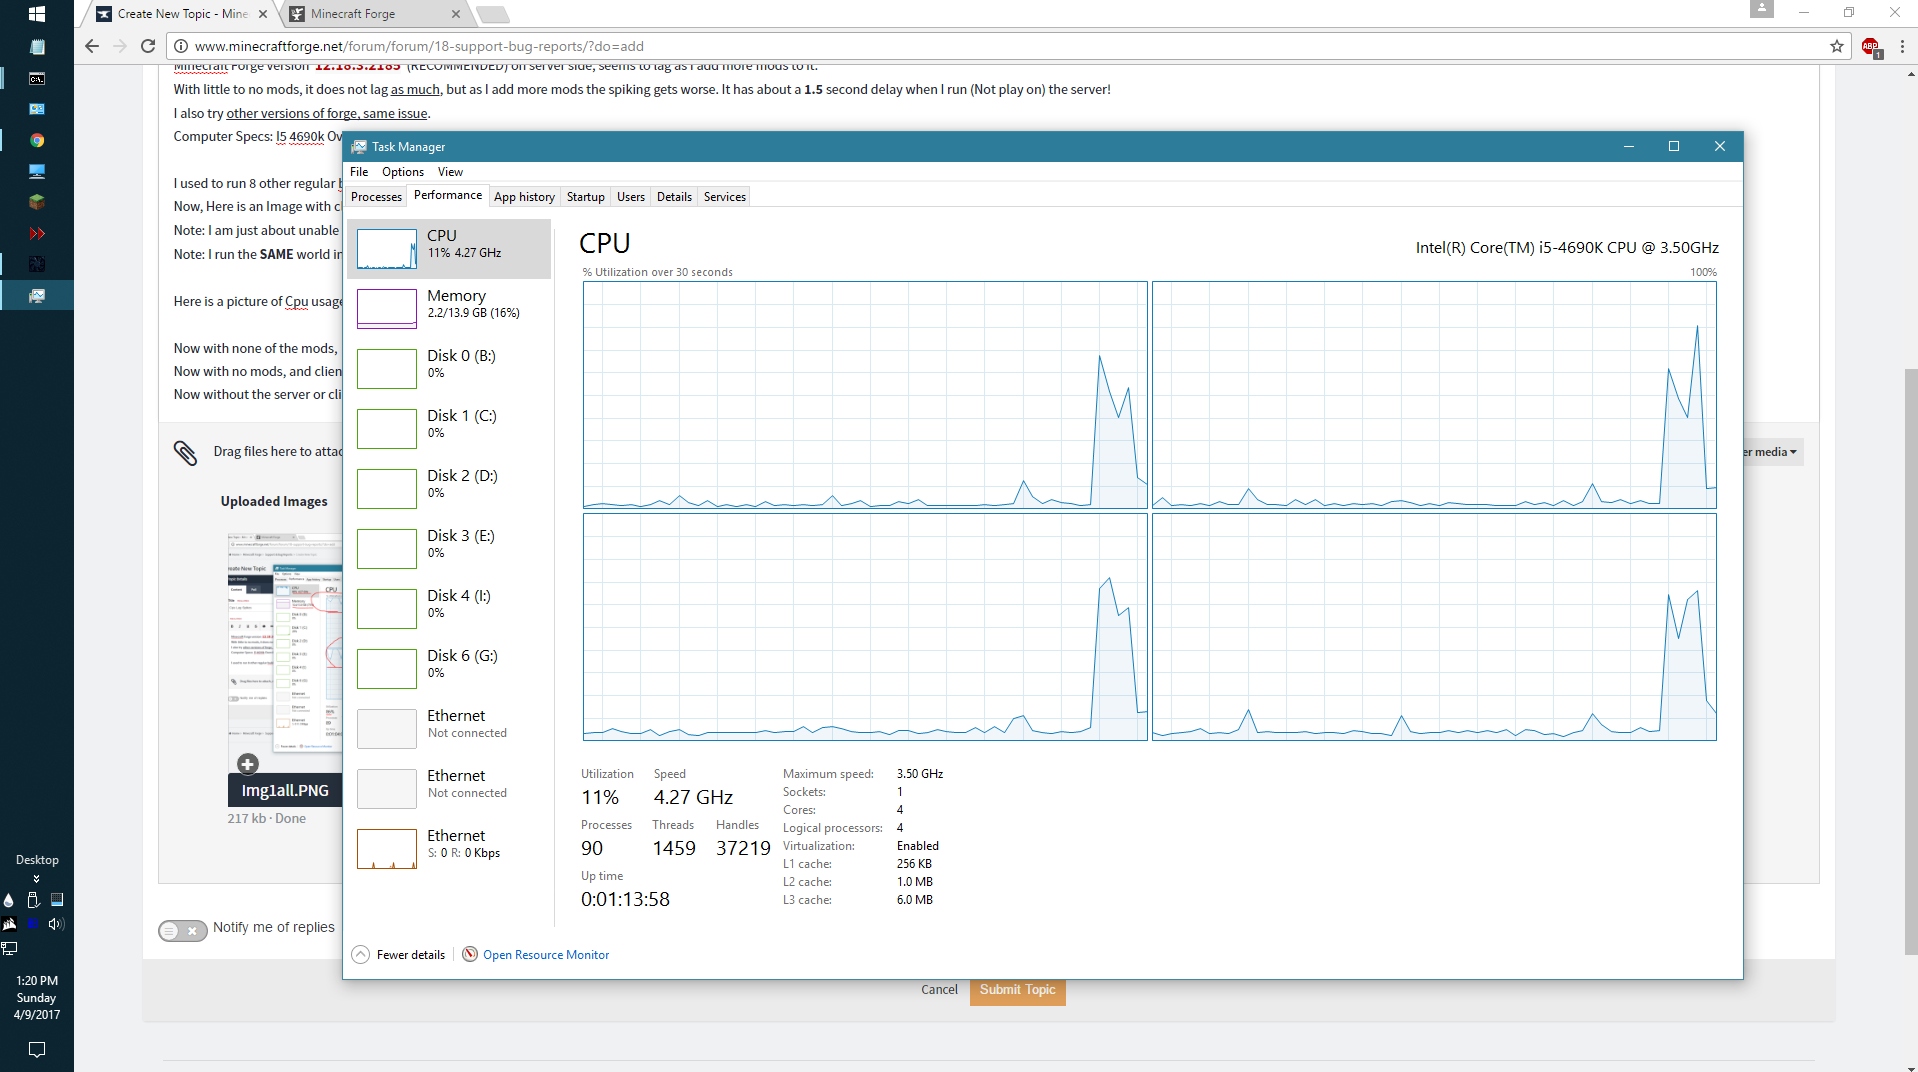 Cpu Lag Spikes - Support & Bug Reports - Minecraft Forge Forums